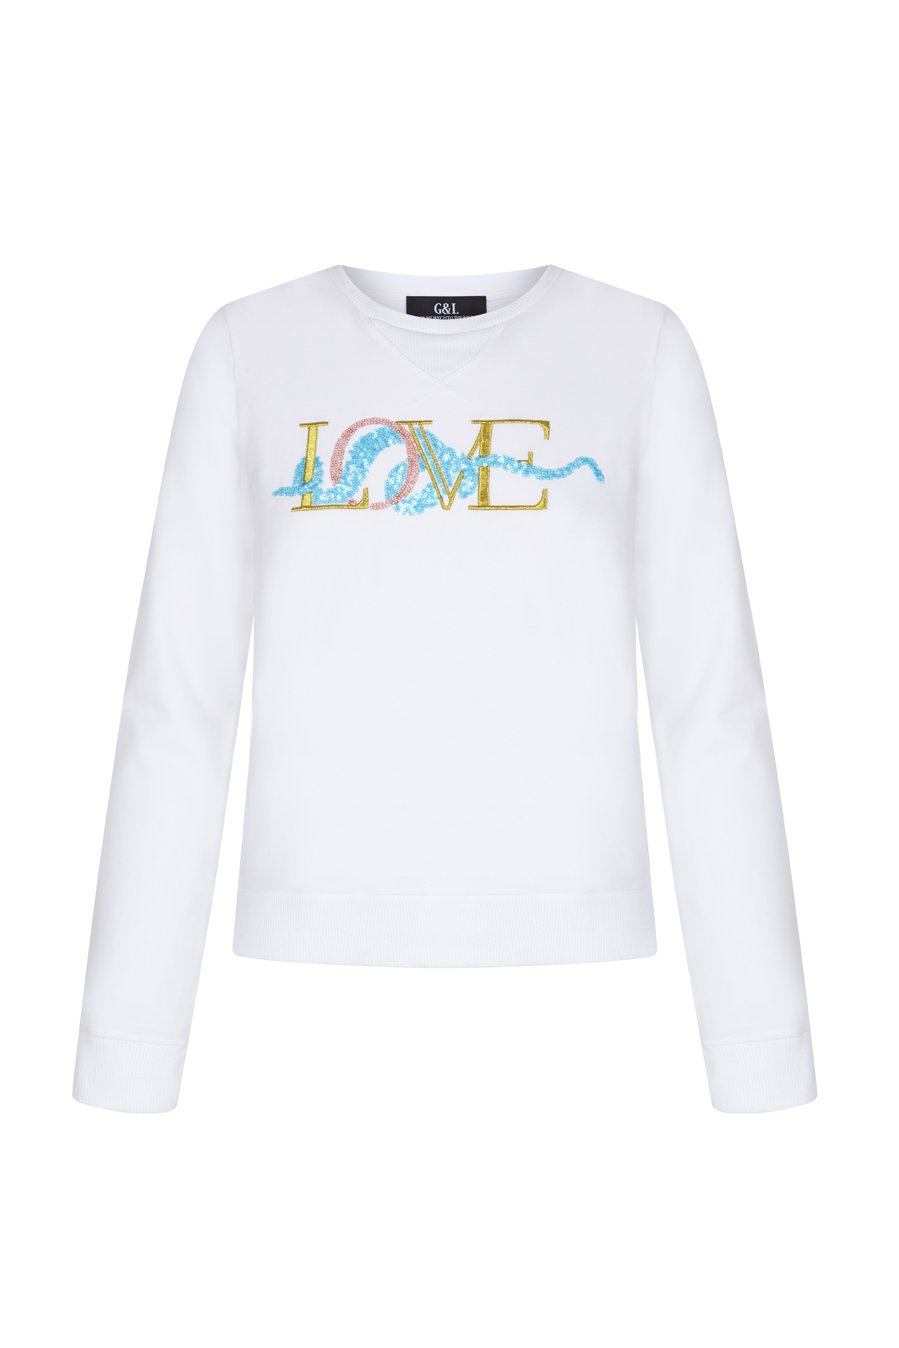 UNDERNEATH LOVE SWEATSHIRT